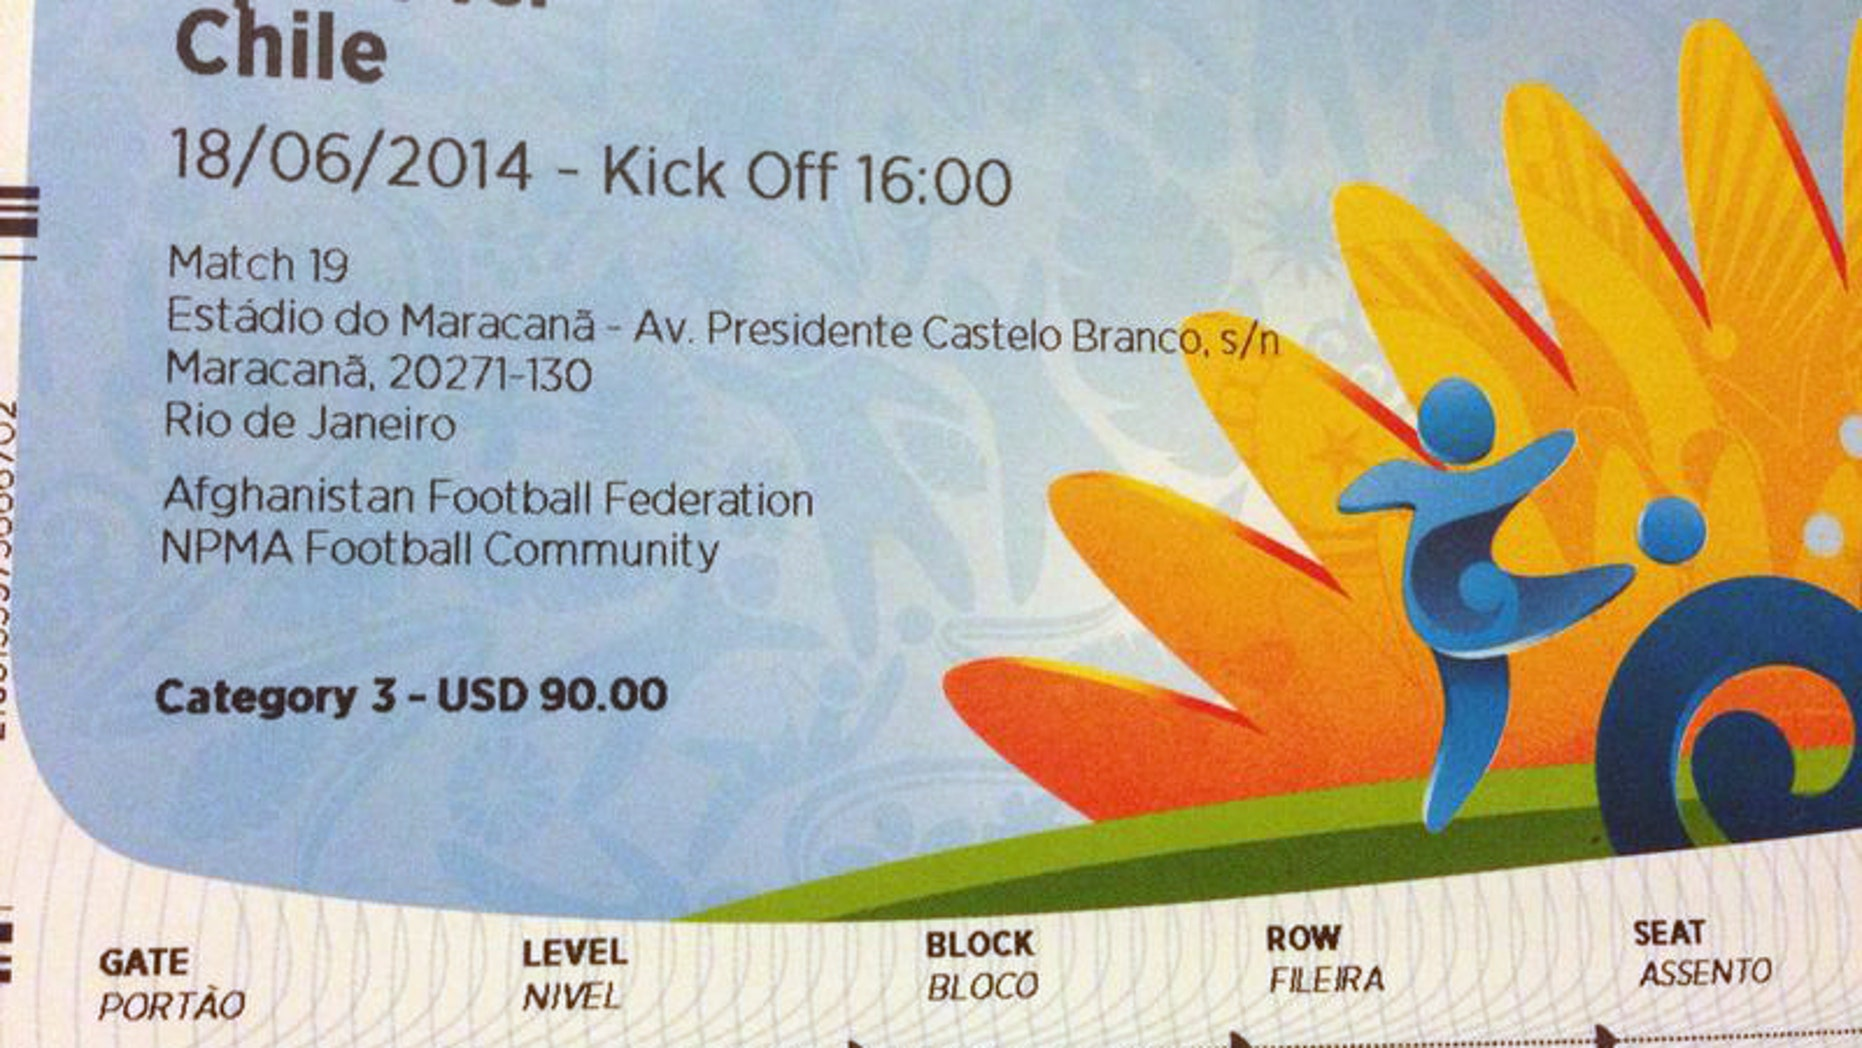 """This June 4, 2014 photo shows a $90 U.S. dollar FIFA ticket for the Spain vs. Chile World Cup game, bought by a fan on Stubhub.com, a website that connects buyers and sellers, for $775 U.S. dollars, in San Juan, Puerto Rico. Brazilian police have widened their investigation into ticket scalping at the World Cup to include """"the participation of someone from FIFA"""" as a source of tickets being resold on the street for many time their face value. (AP Photo)"""